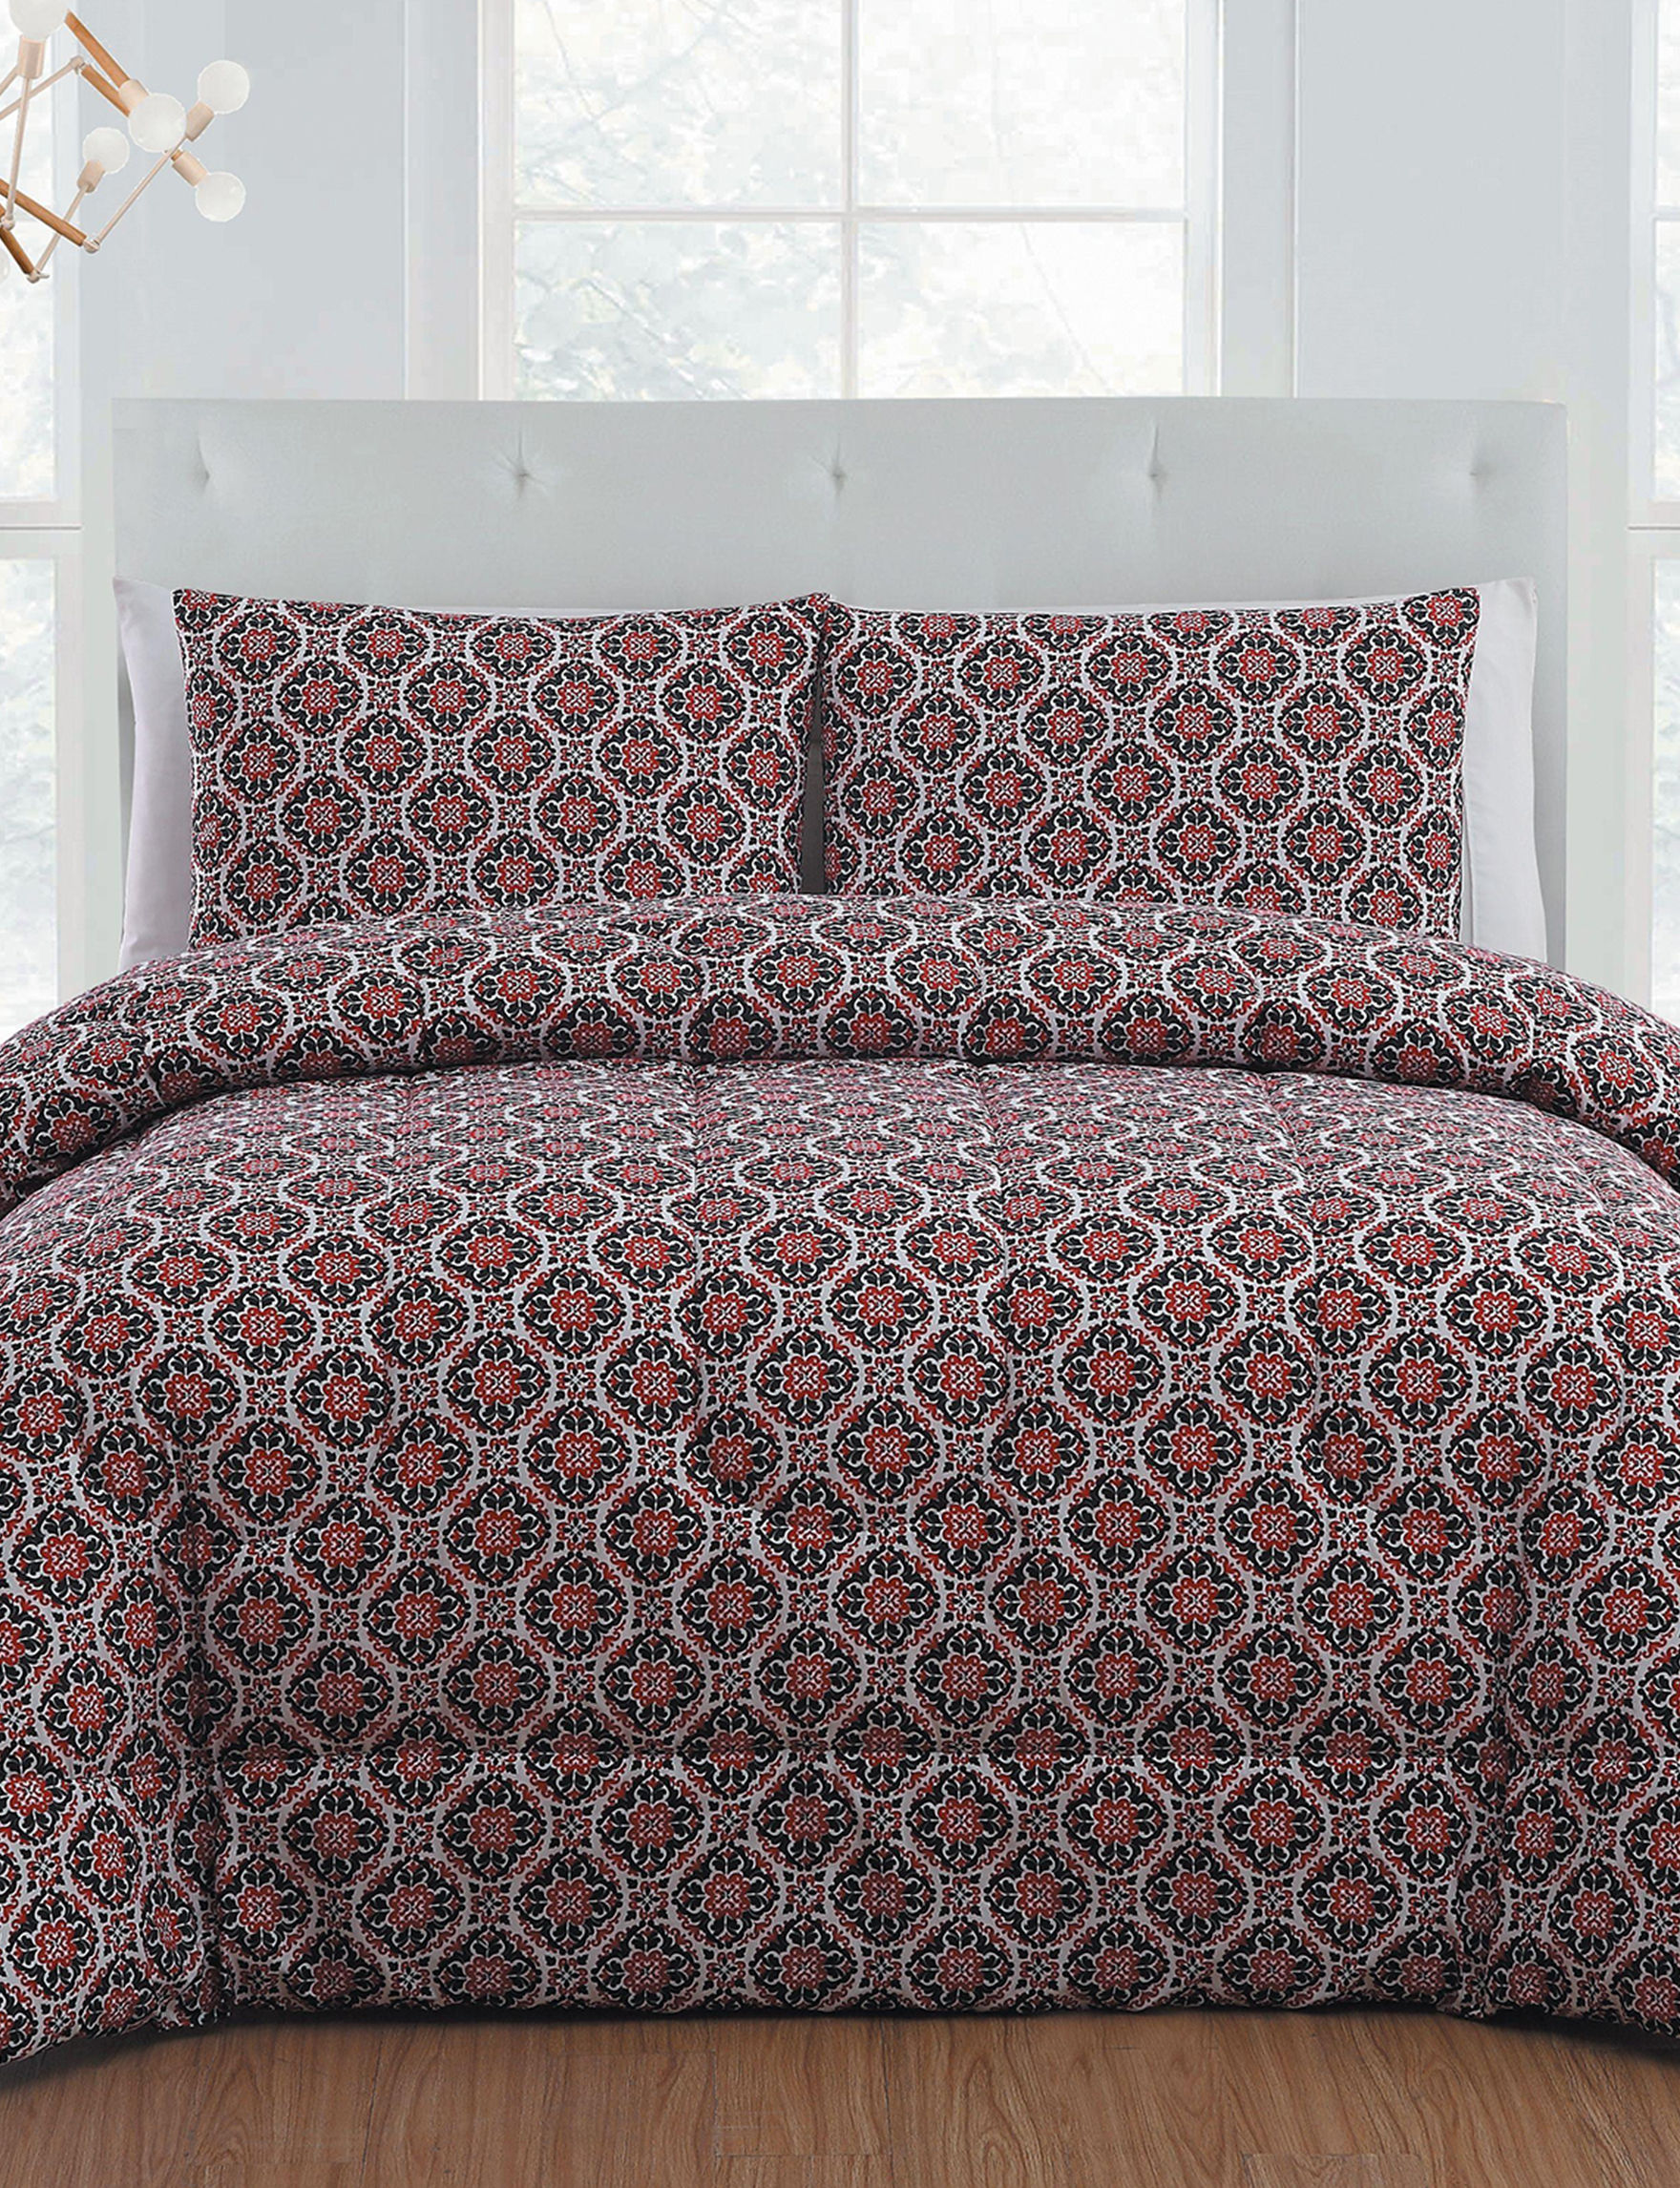 Harper Home Red / Black Comforters & Comforter Sets